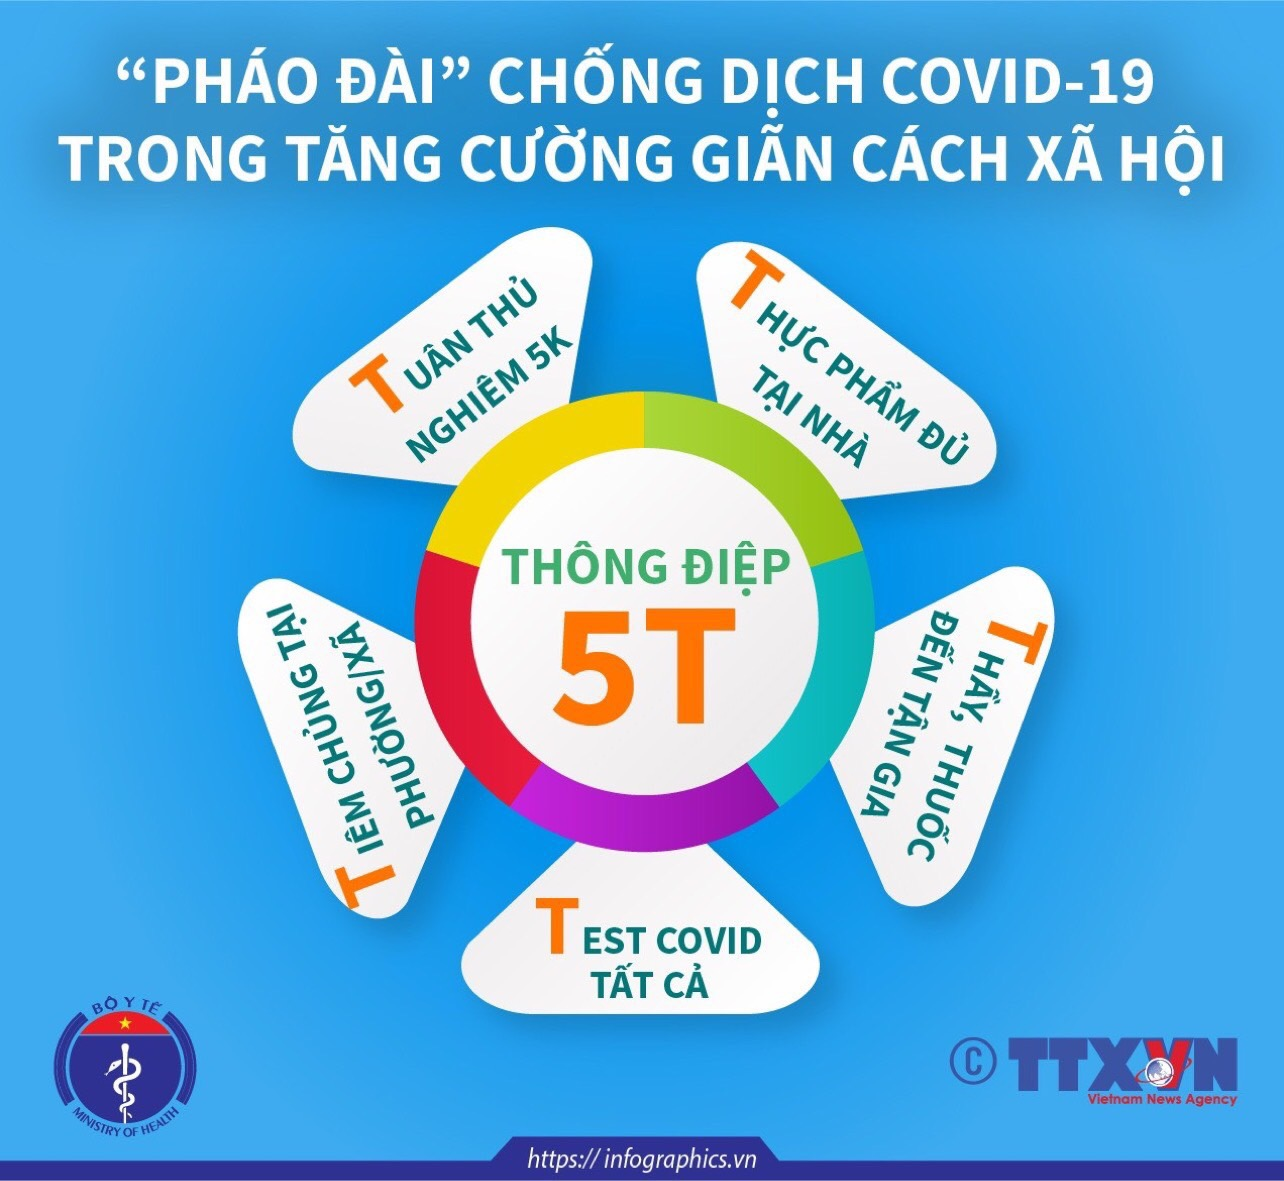 4. anh 4-6104420